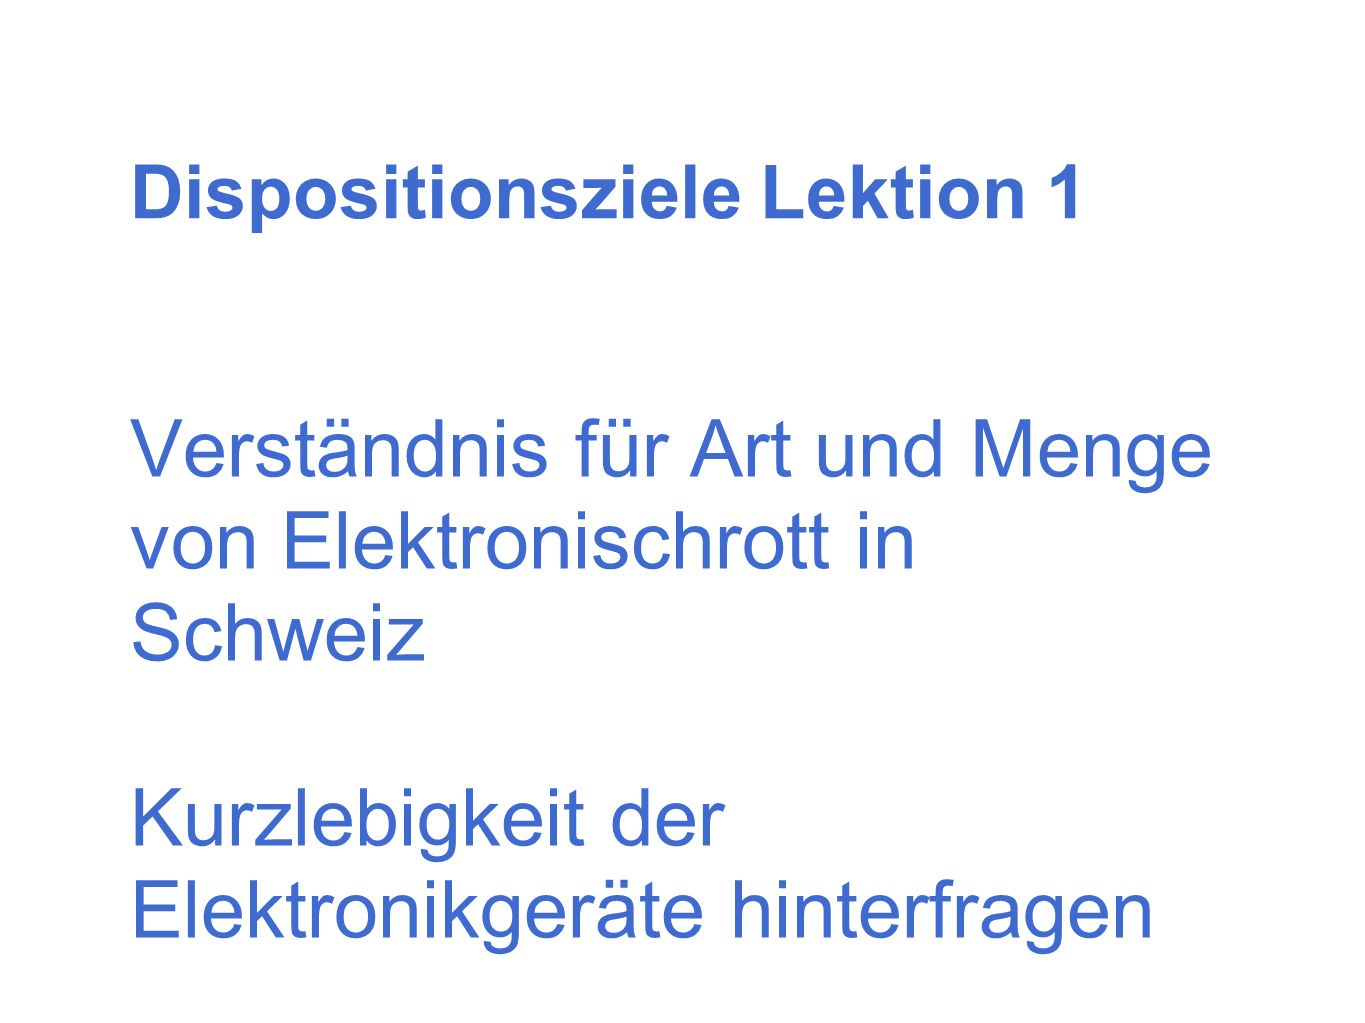 Dispositionsziele Lektion 1